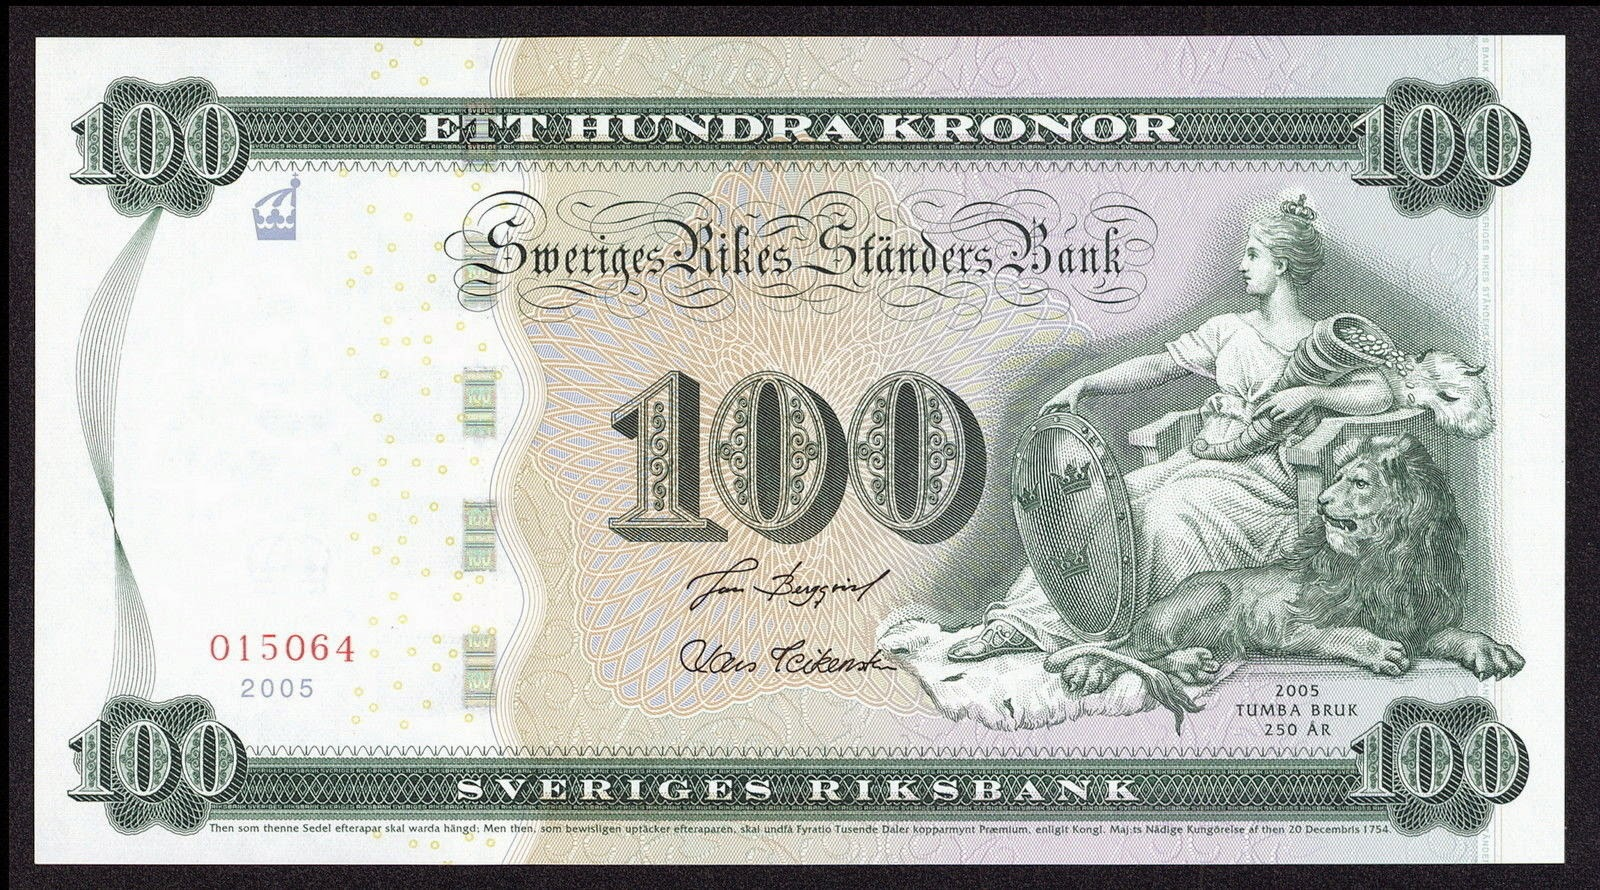 100 Swedish Krona commemorative banknote